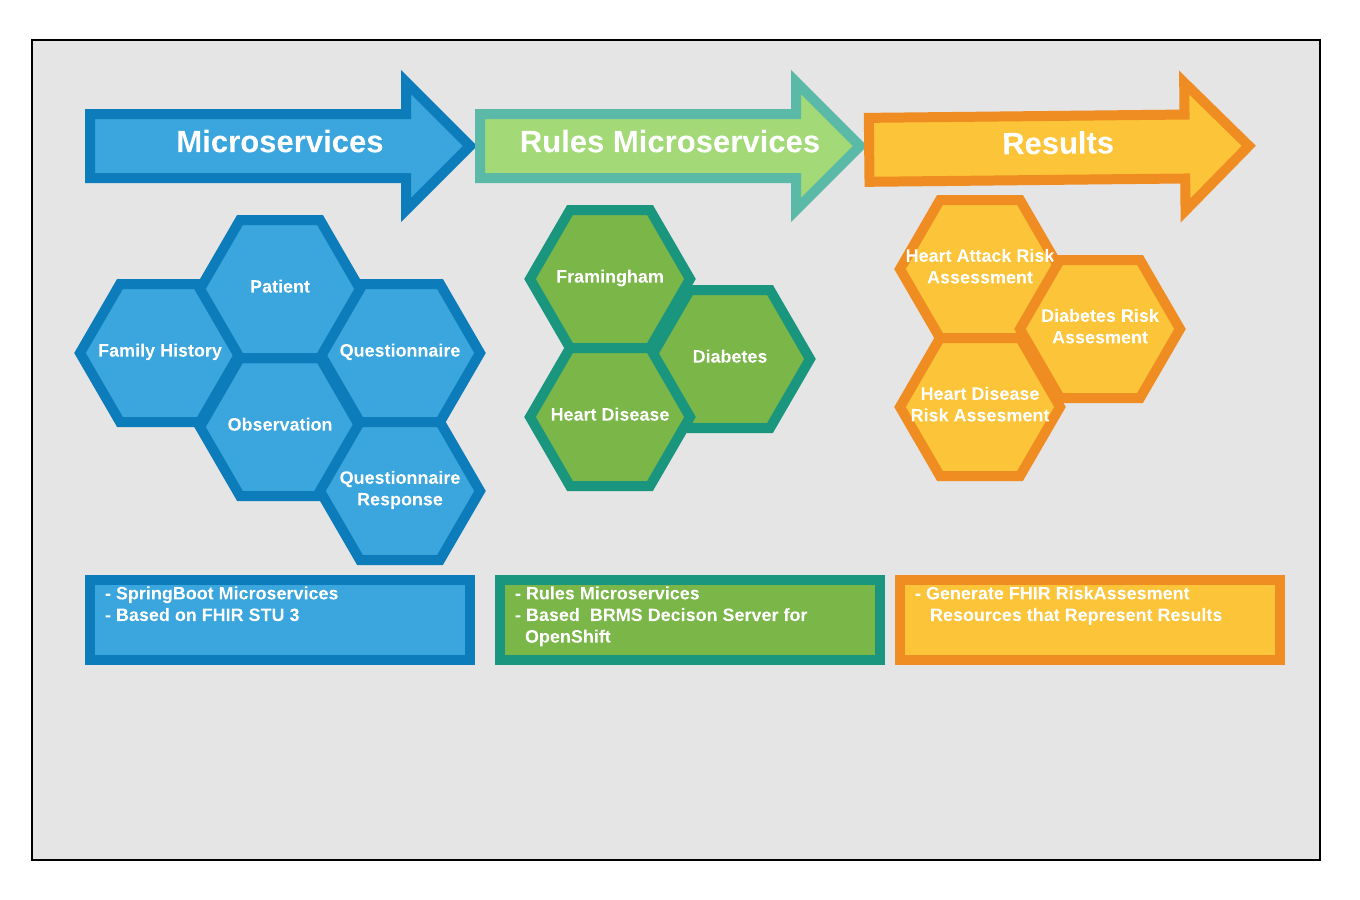 Business Rules As a Microservice Medical Use Case